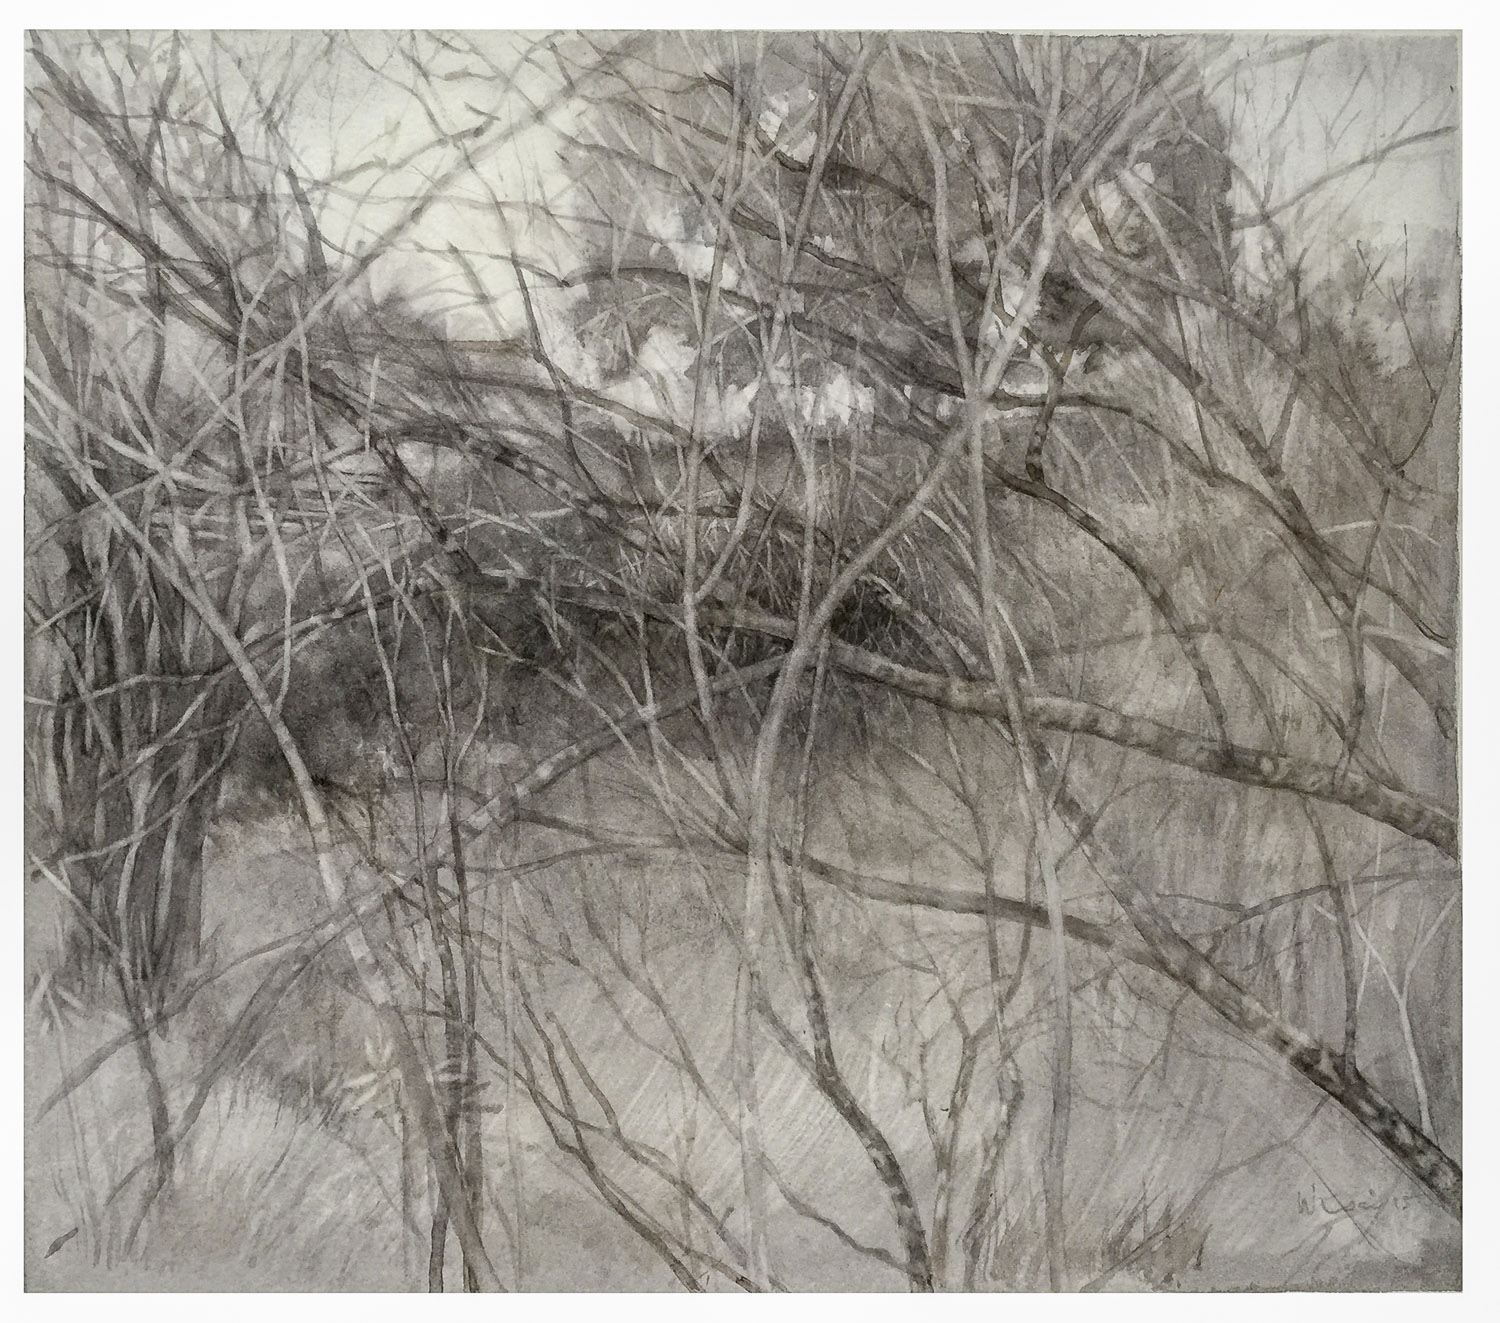 The Gully Winter#2 2015 - Wendy Tsai